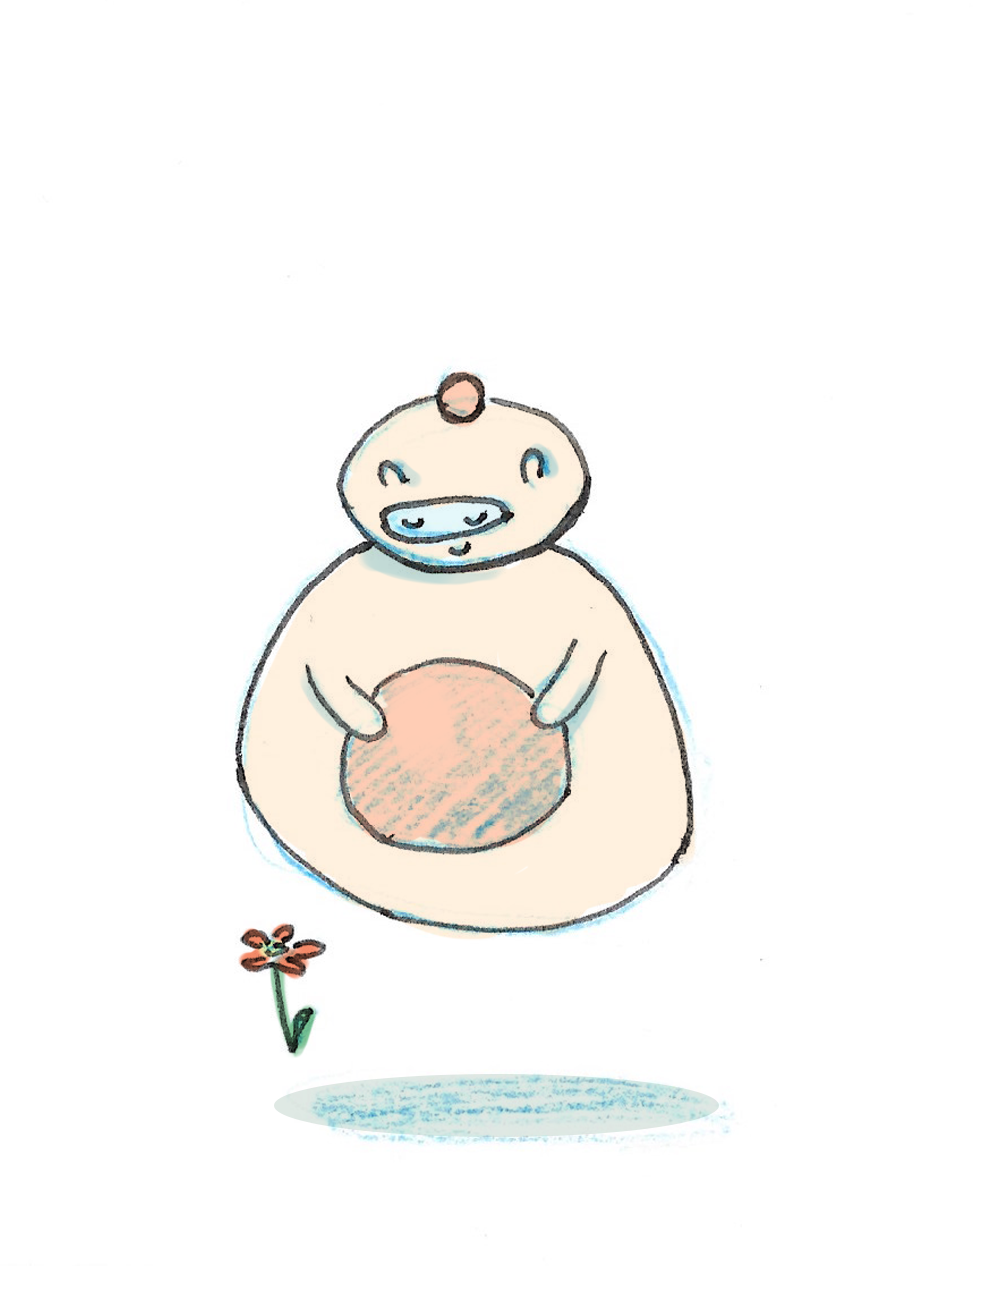 Babaoo_flowers copy.png